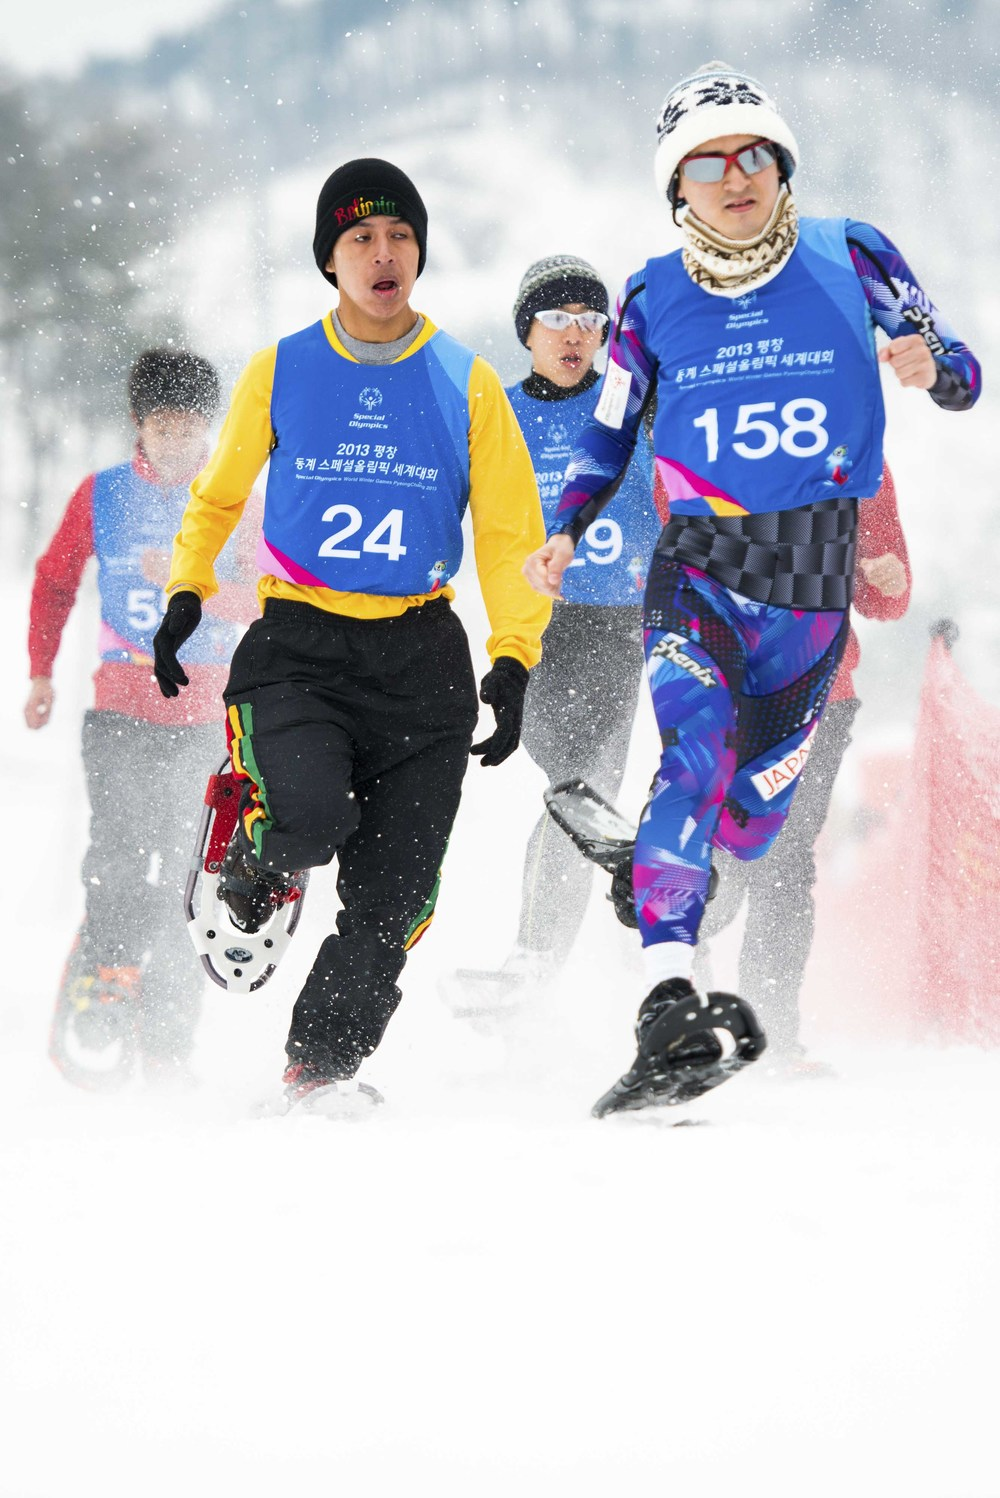 Contestants at the Special Olympic World Winter Games, Korea, February 2013